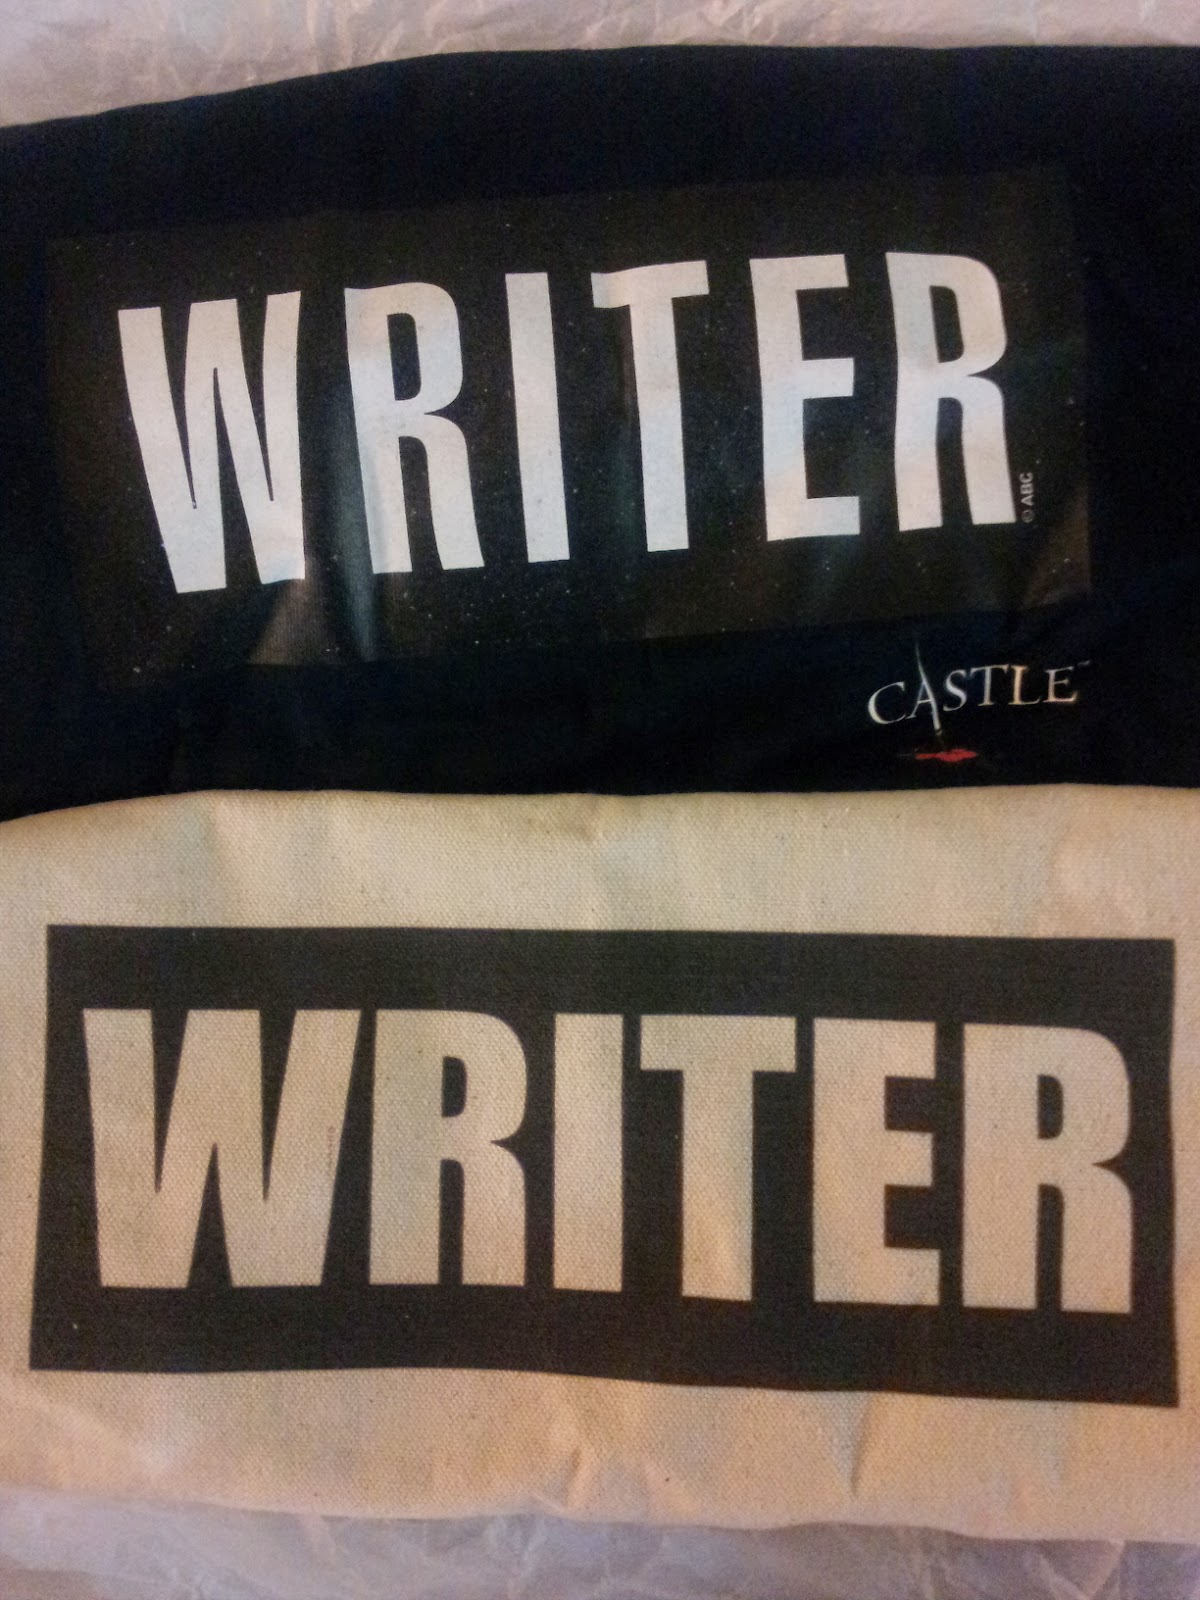 My Birthday Was Last Week And Family Gave Me The Most Fun Creative Gifts So If You Need A Gift For Writer In Your Life Here Are Some Ideas